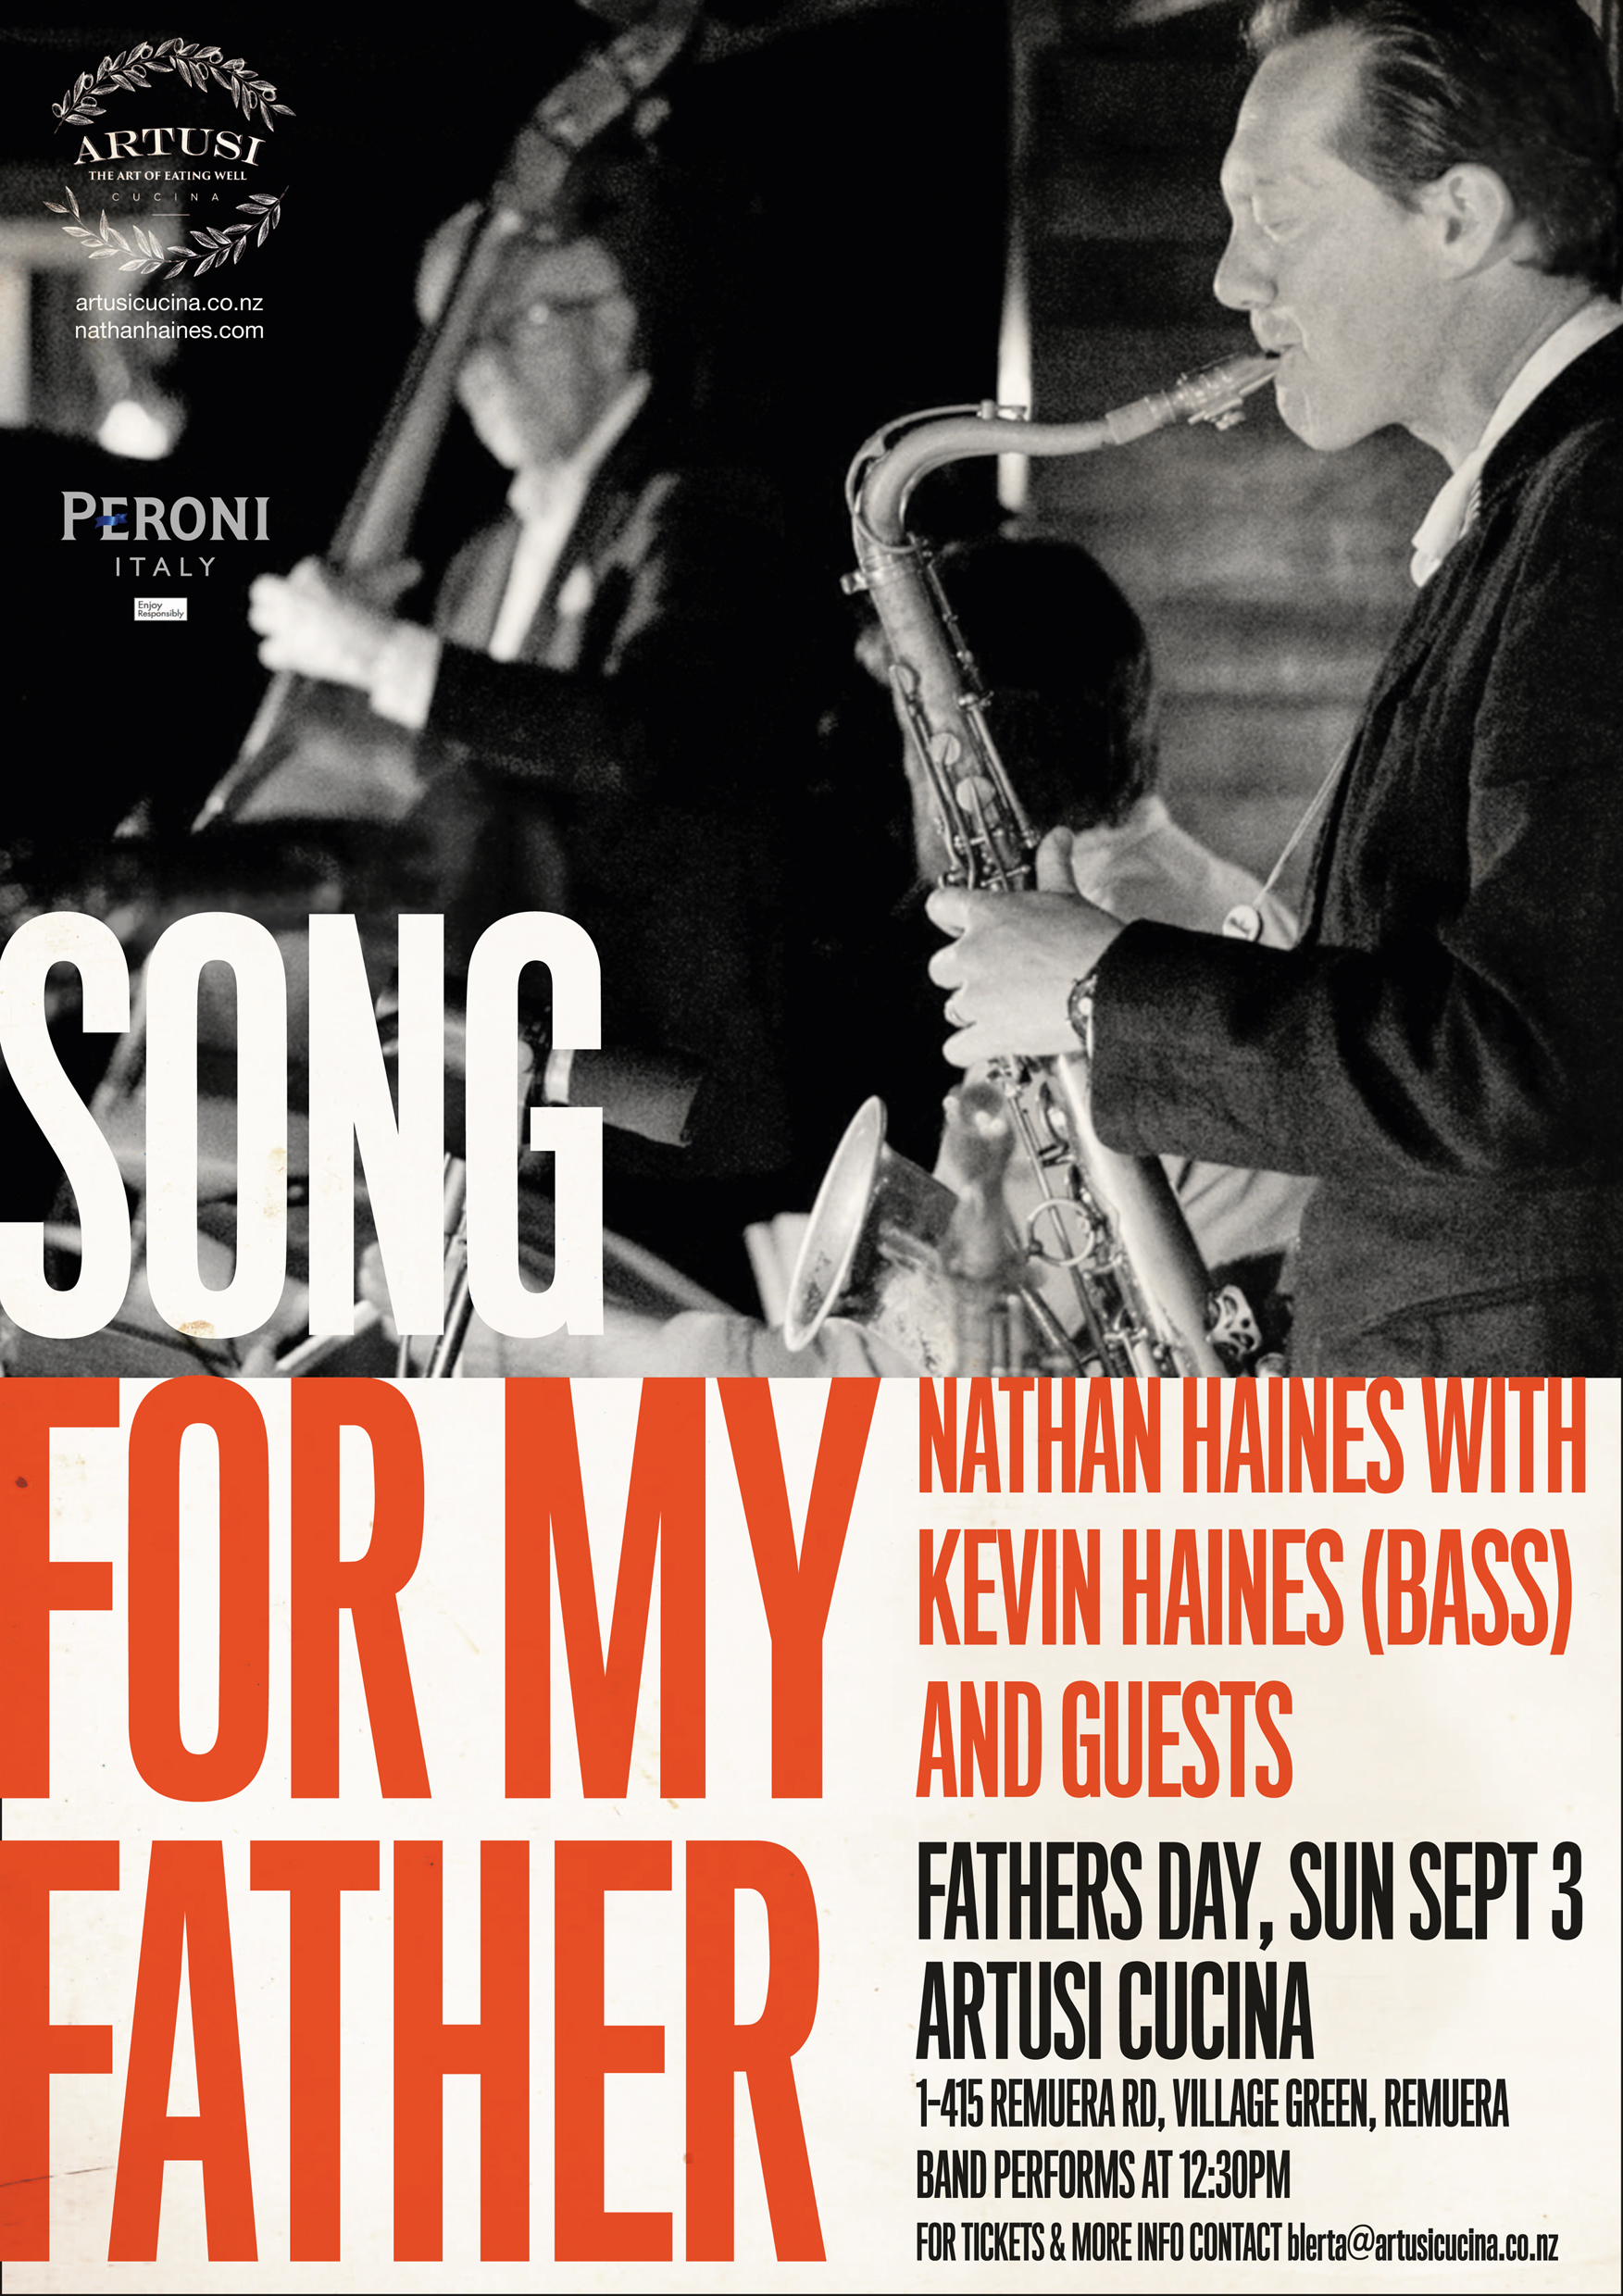 Nathan Haines Fathers Day Poster.jpg